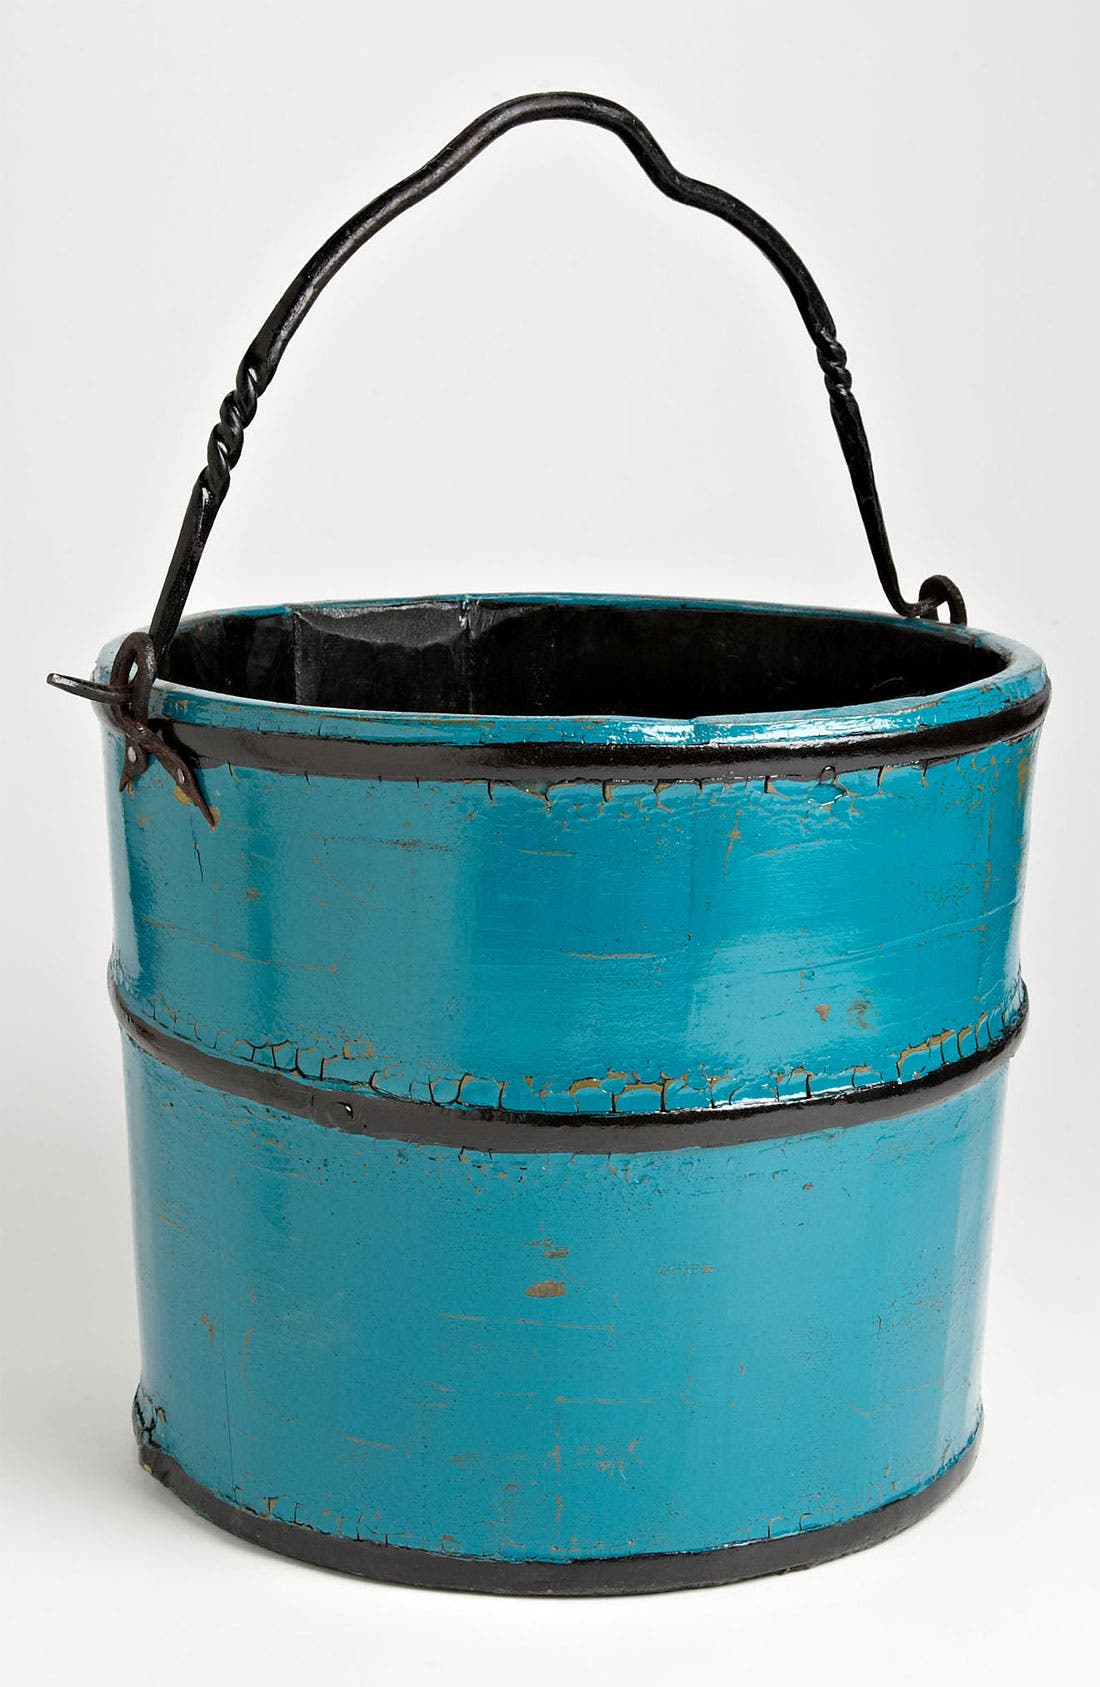 Main Image - Painted Wood Bucket, Large